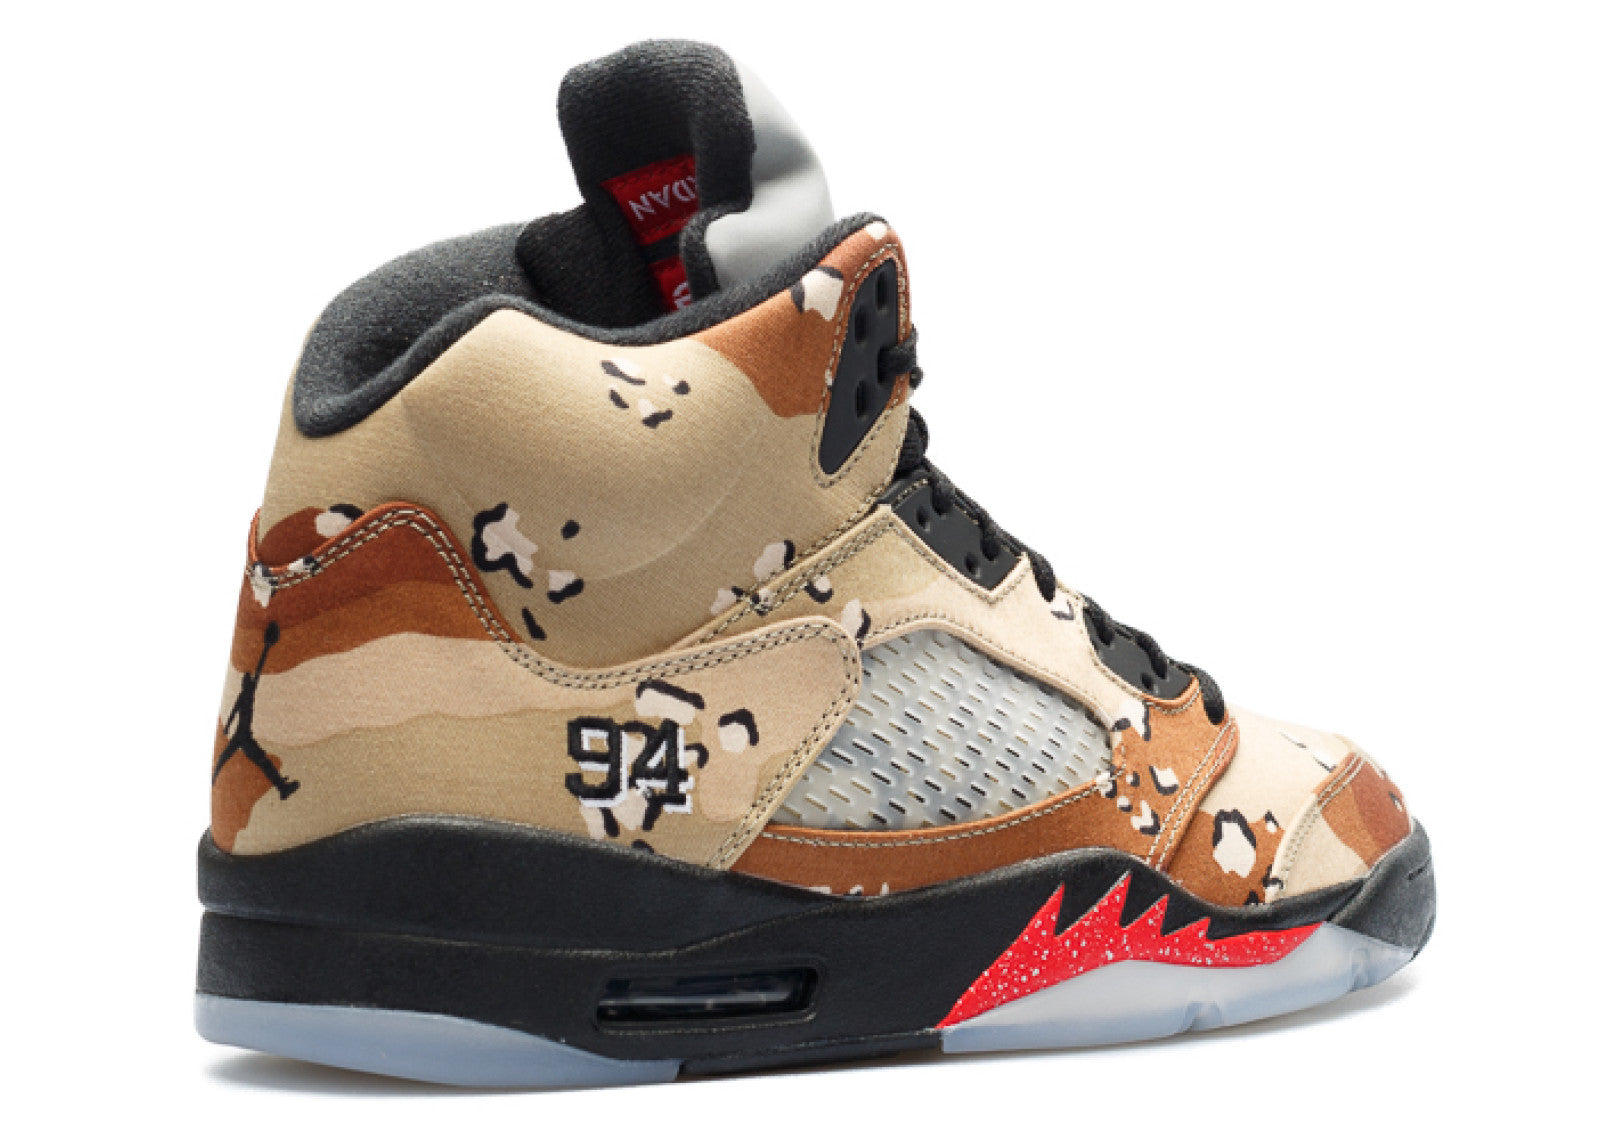 check out 6a6ed a8b9a AIR JORDAN 5 RETRO SUPREME